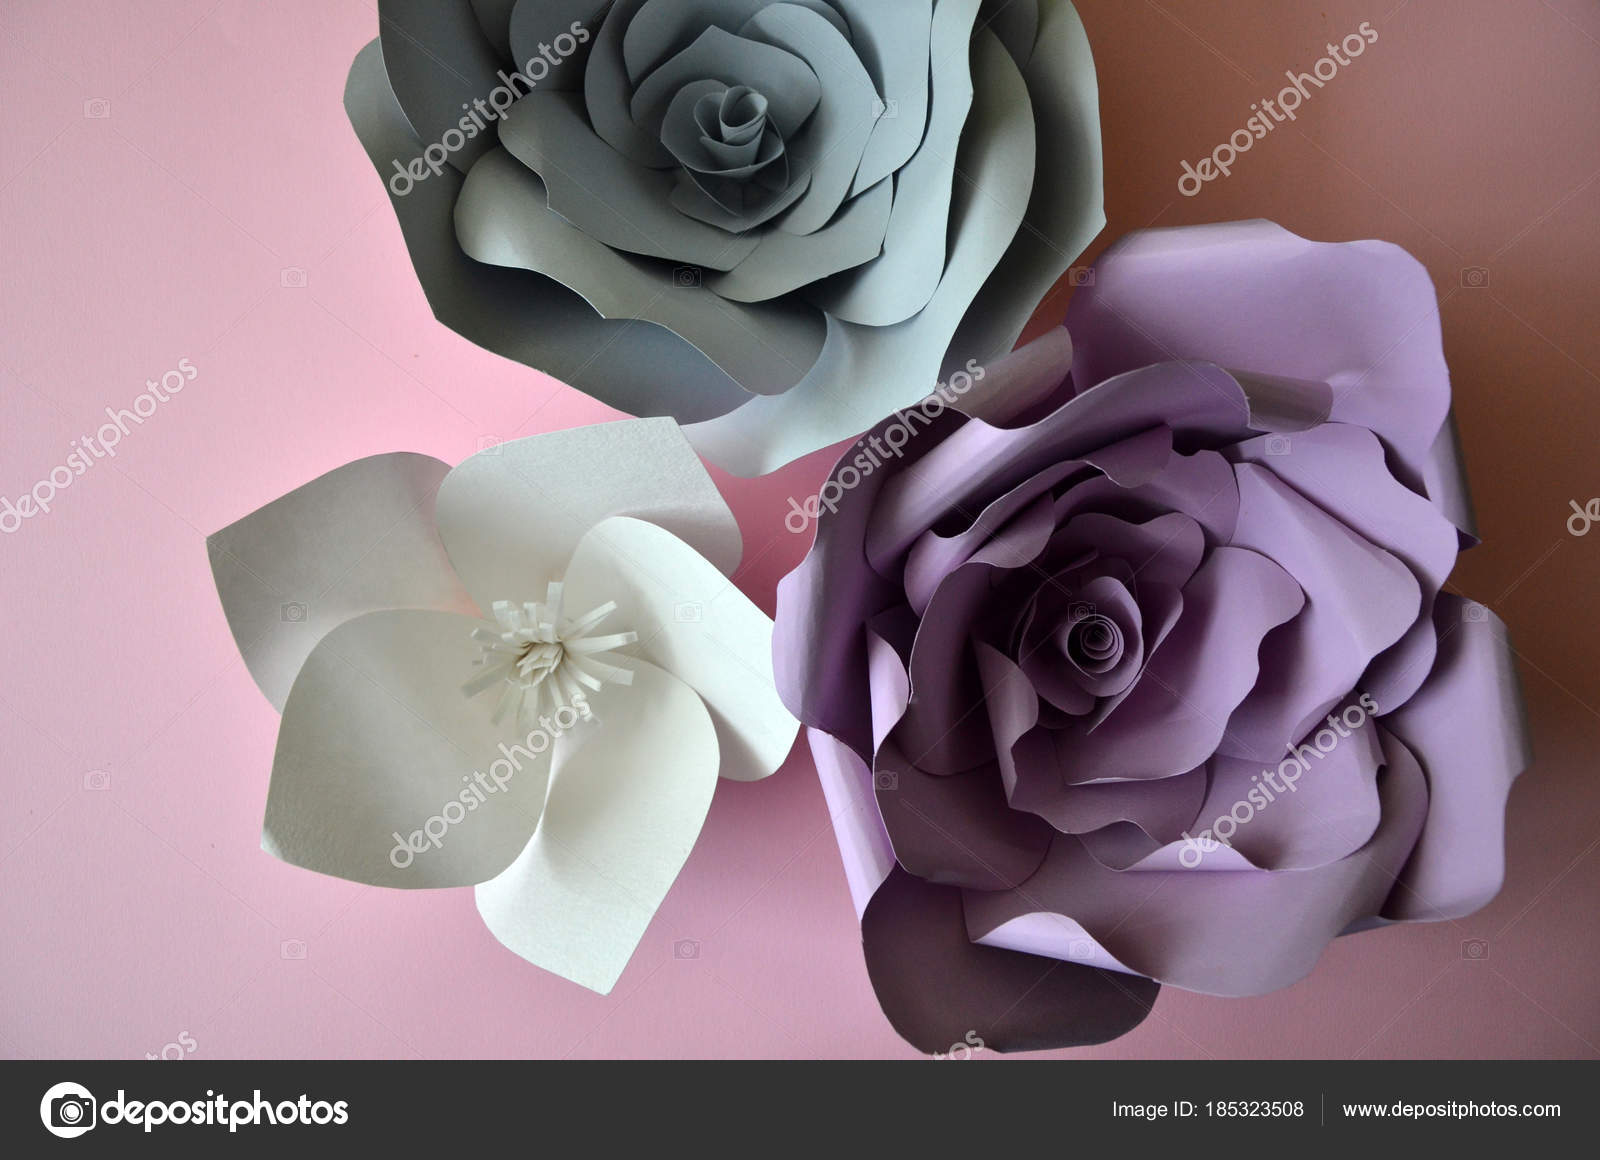 Flowers background colourful handmade paper flowers on pink paper flowers on white background colourful handmade paper flowers on pink background vintage paper flowers ultra violet grey flowers paper background mightylinksfo